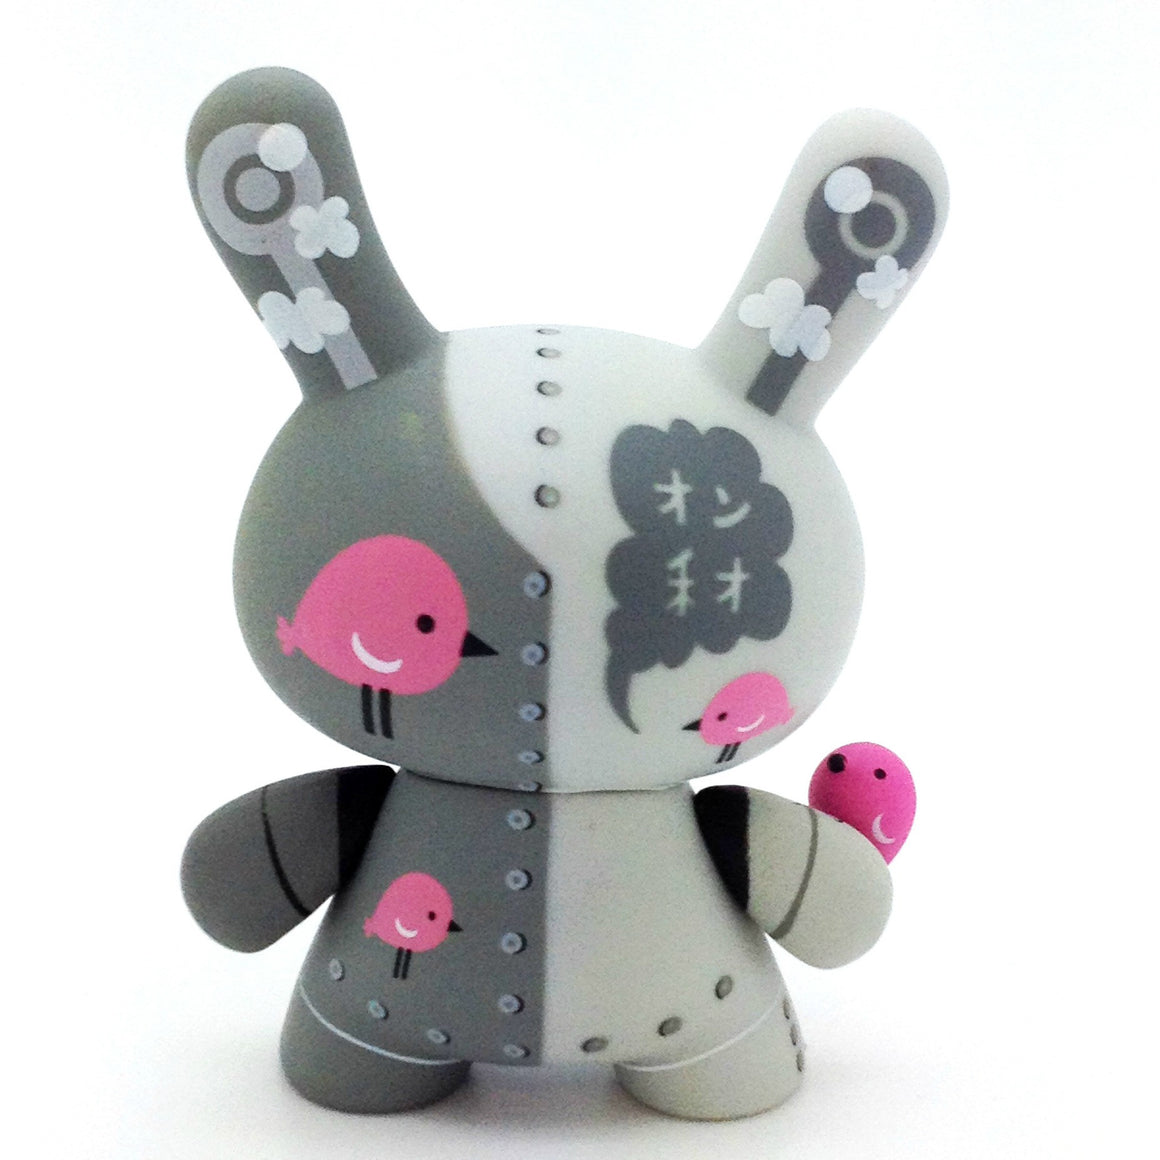 2Tone Dunny Series - Tad Carpenter - Mindzai  - 1